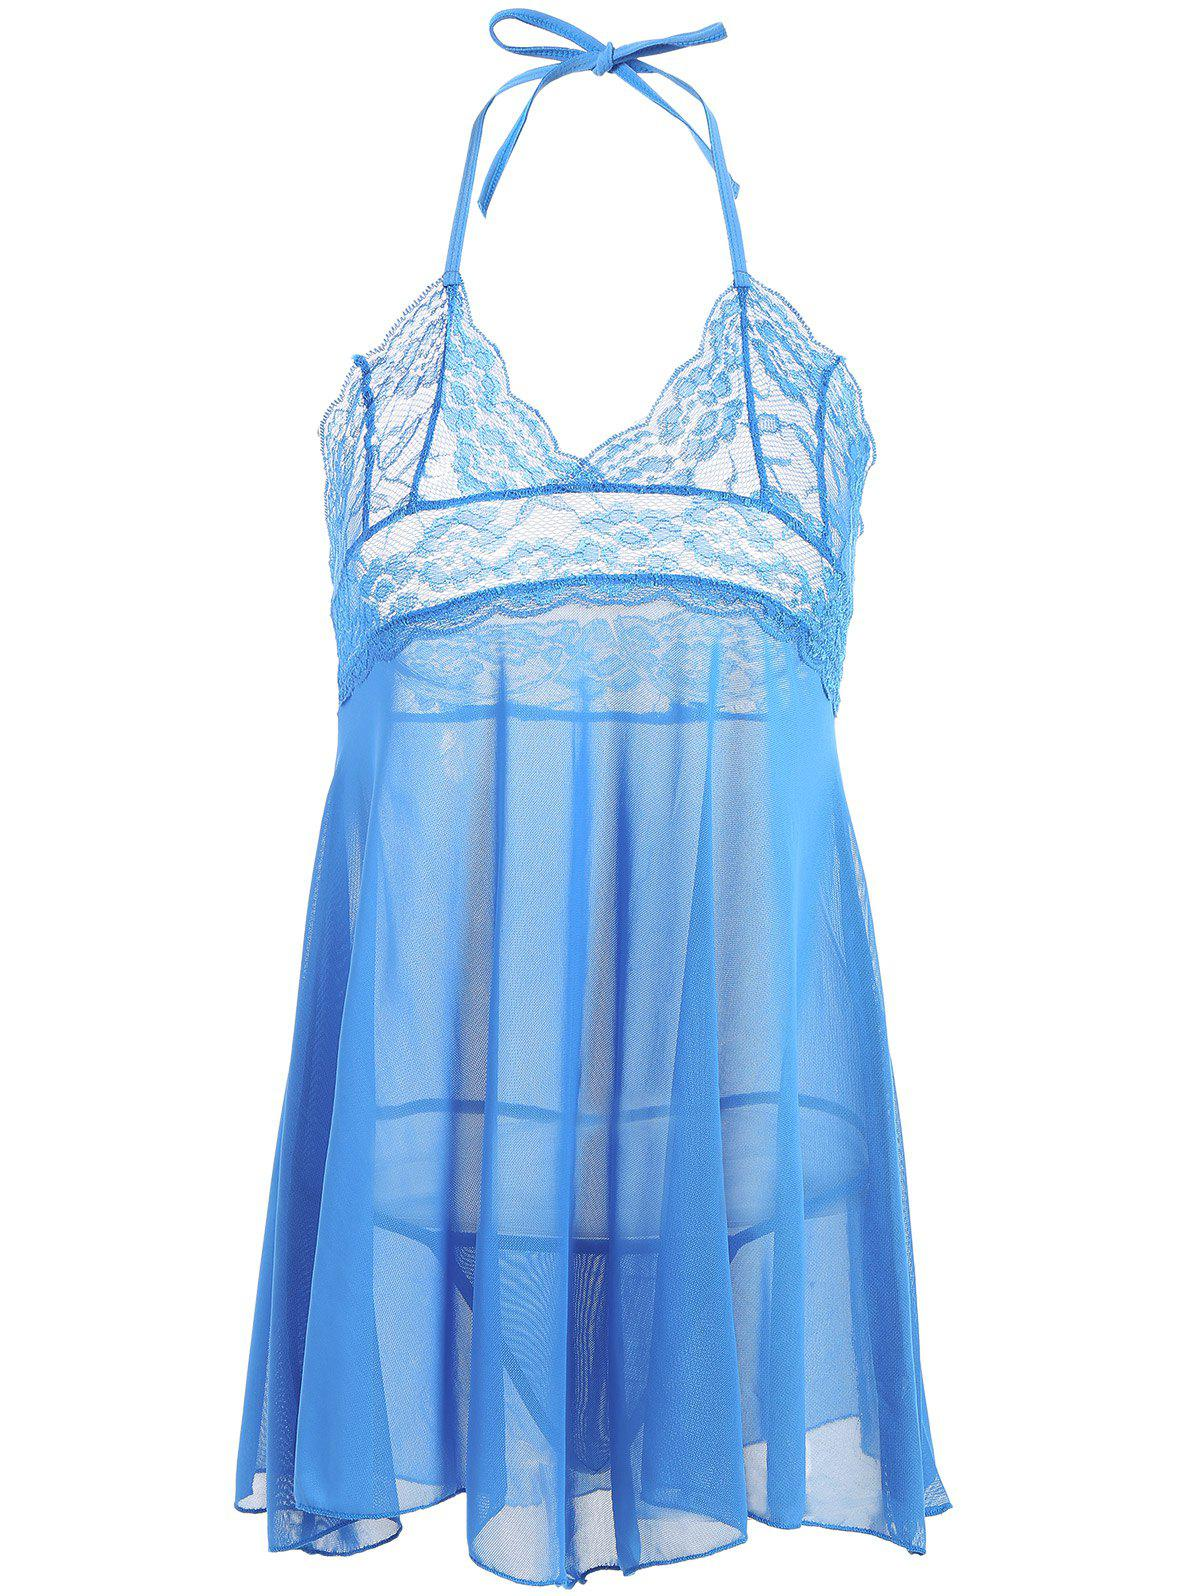 See-Through Lace Panel BabydollWomen<br><br><br>Size: ONE SIZE<br>Color: LIGHT BLUE